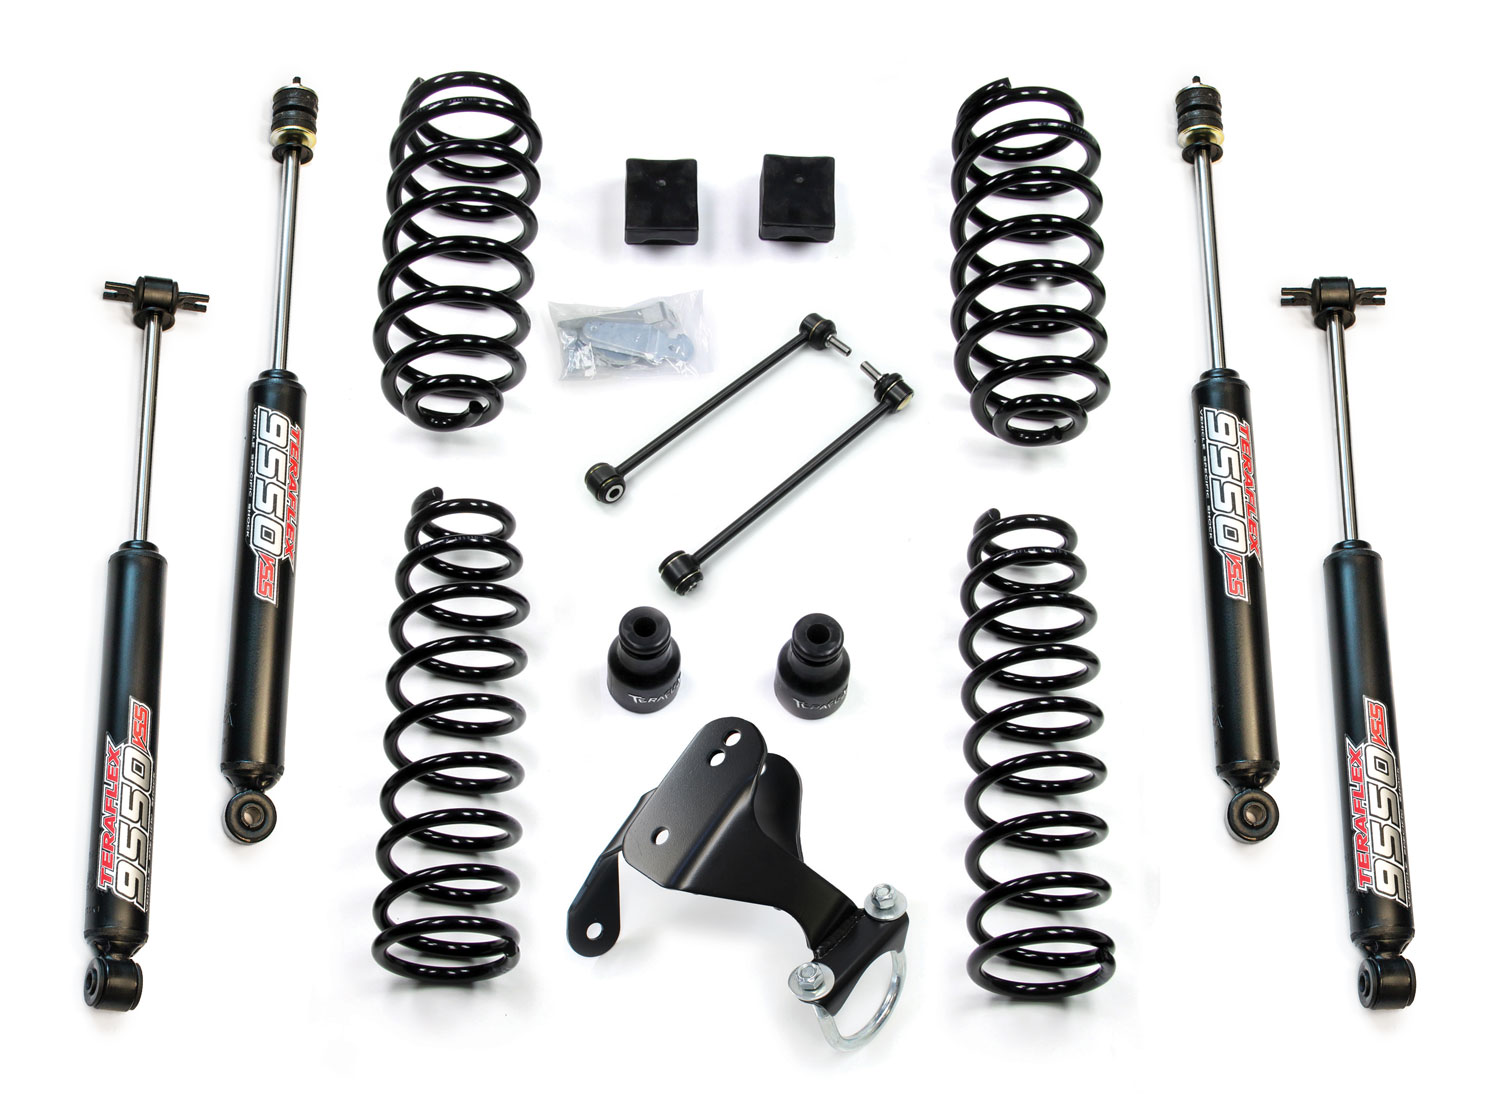 Teraflex Suspension 2.5in Lift Kit, w/Shocks  - JK 2DR